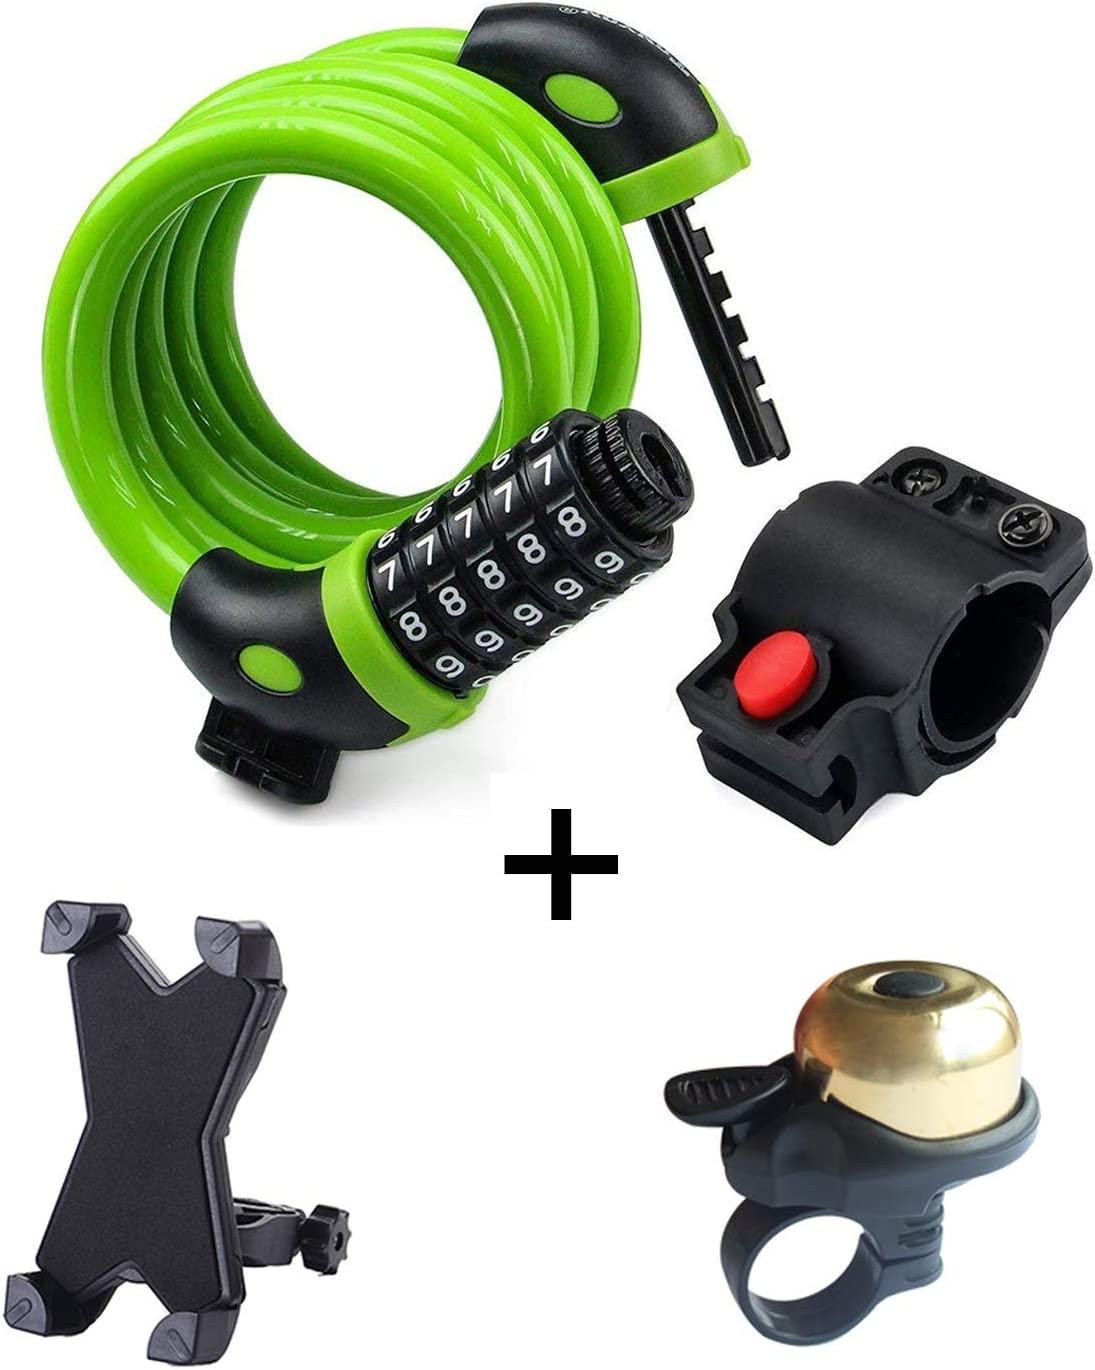 1.2mx12mm with Bike Phone Holder Hexu Bike Lock High Security 5 Digit Resettable Combination Coiling Cable Lock Best for Bicycle Outdoors Bike Bell